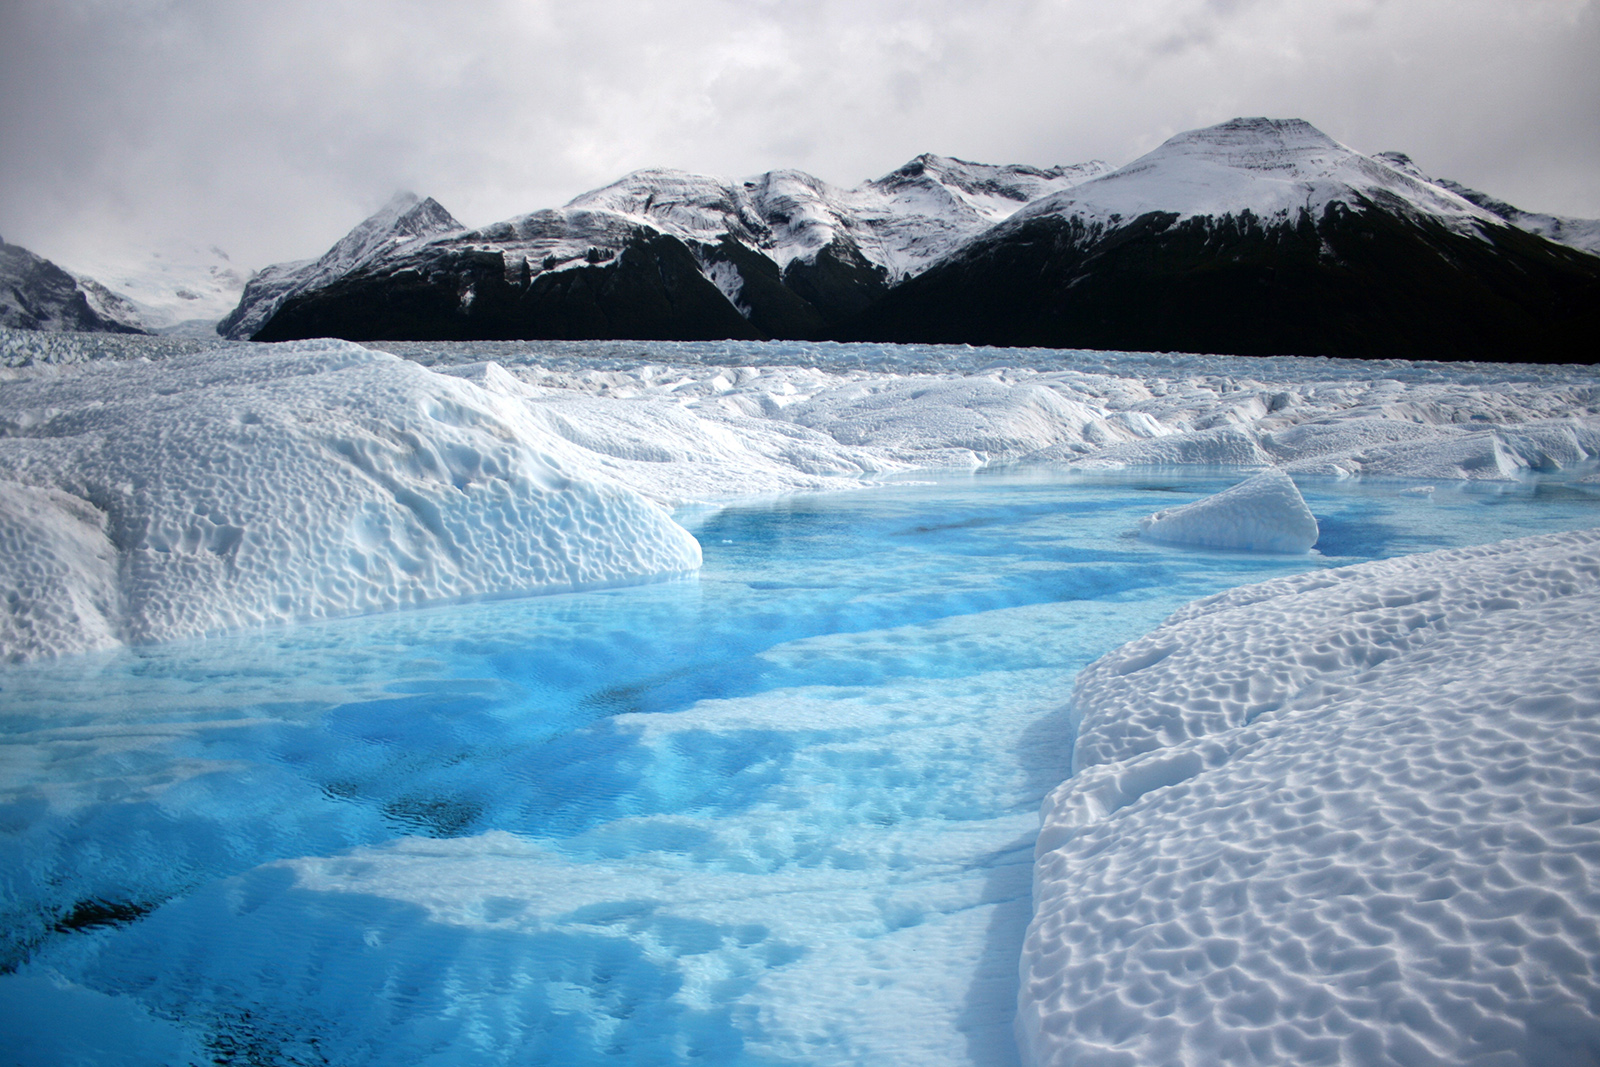 Glacier-viewing lures visitors to Patagonia just as much as wildlife-viewing opportunities